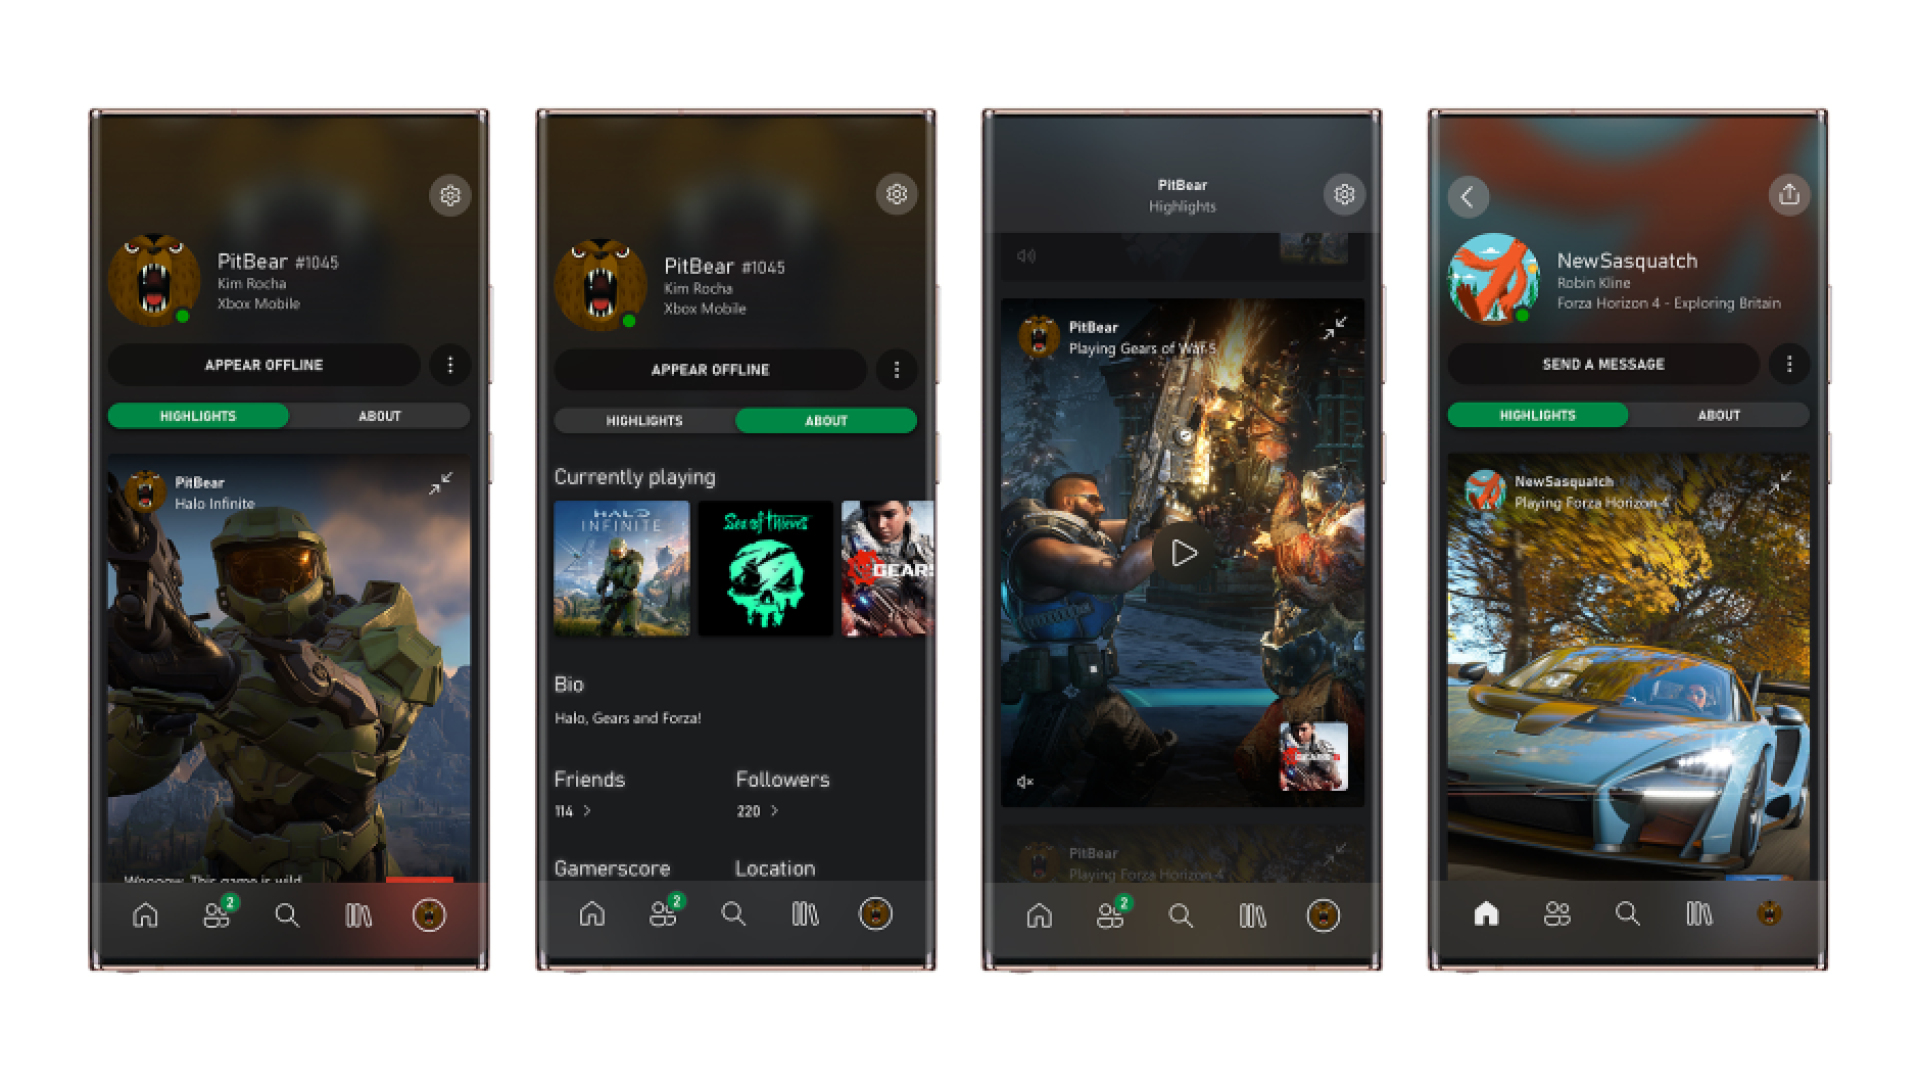 New Xbox App (Beta) on Mobile now available on Android and iOS Xbox-Mobile-App_Profiles.jpg